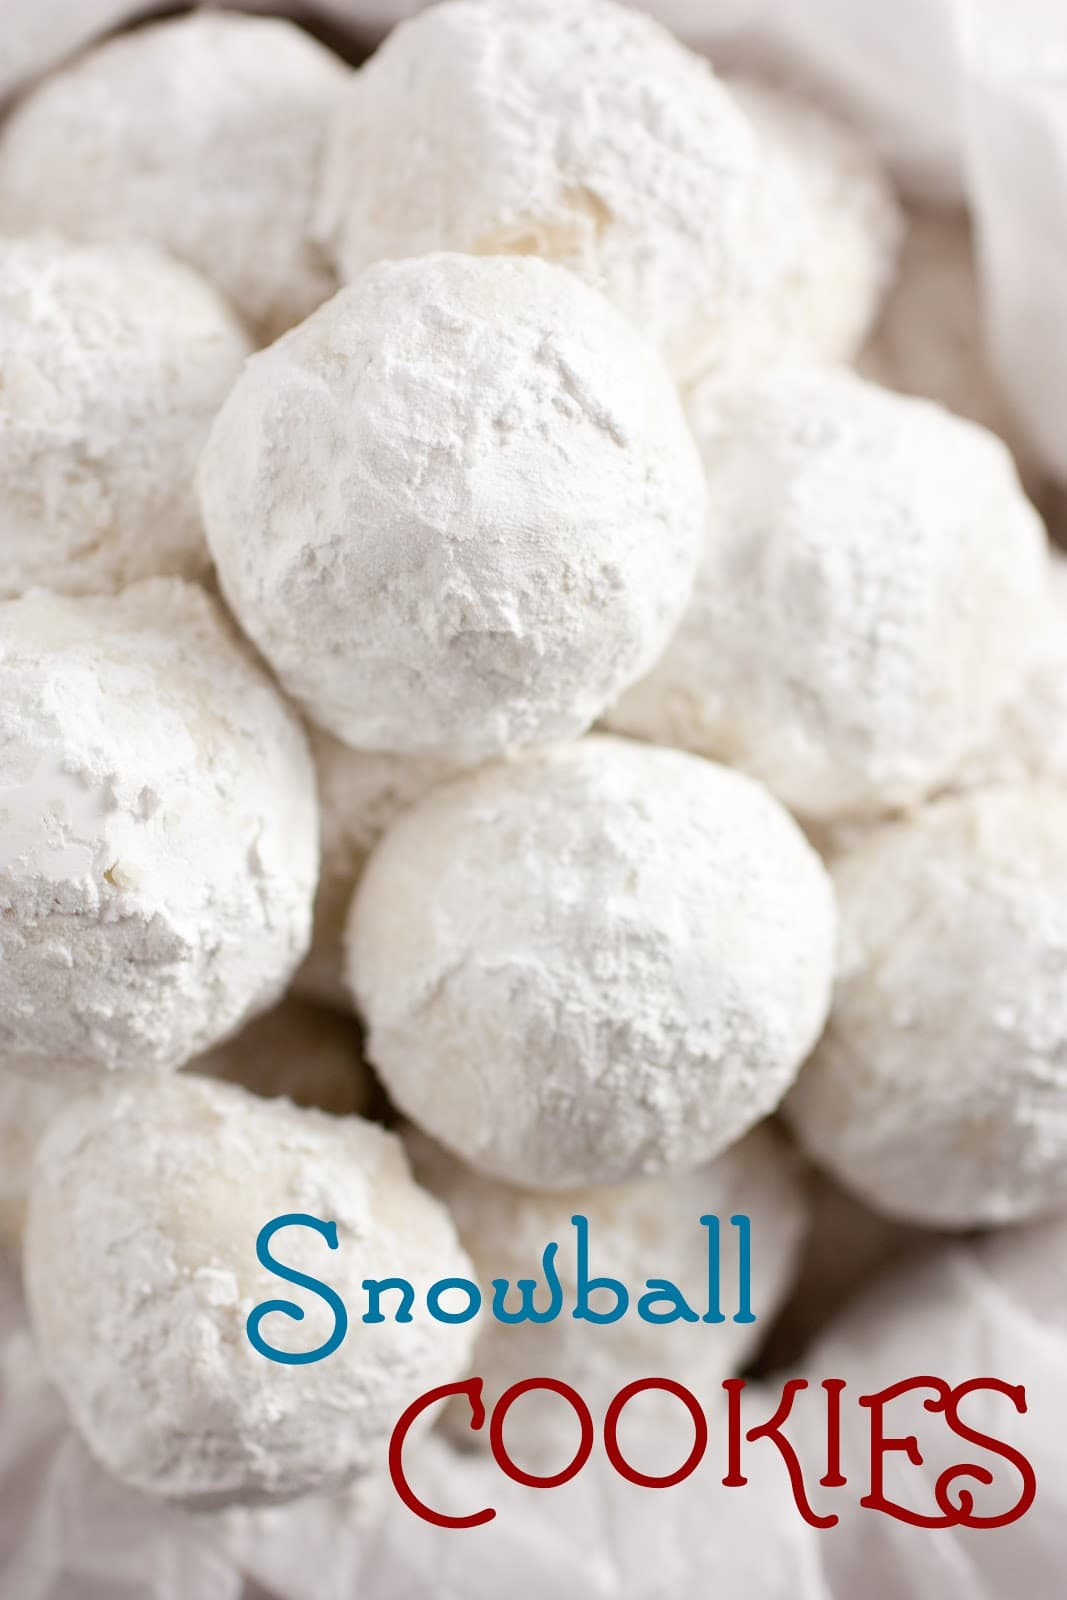 Snowball cookies recipe without nuts